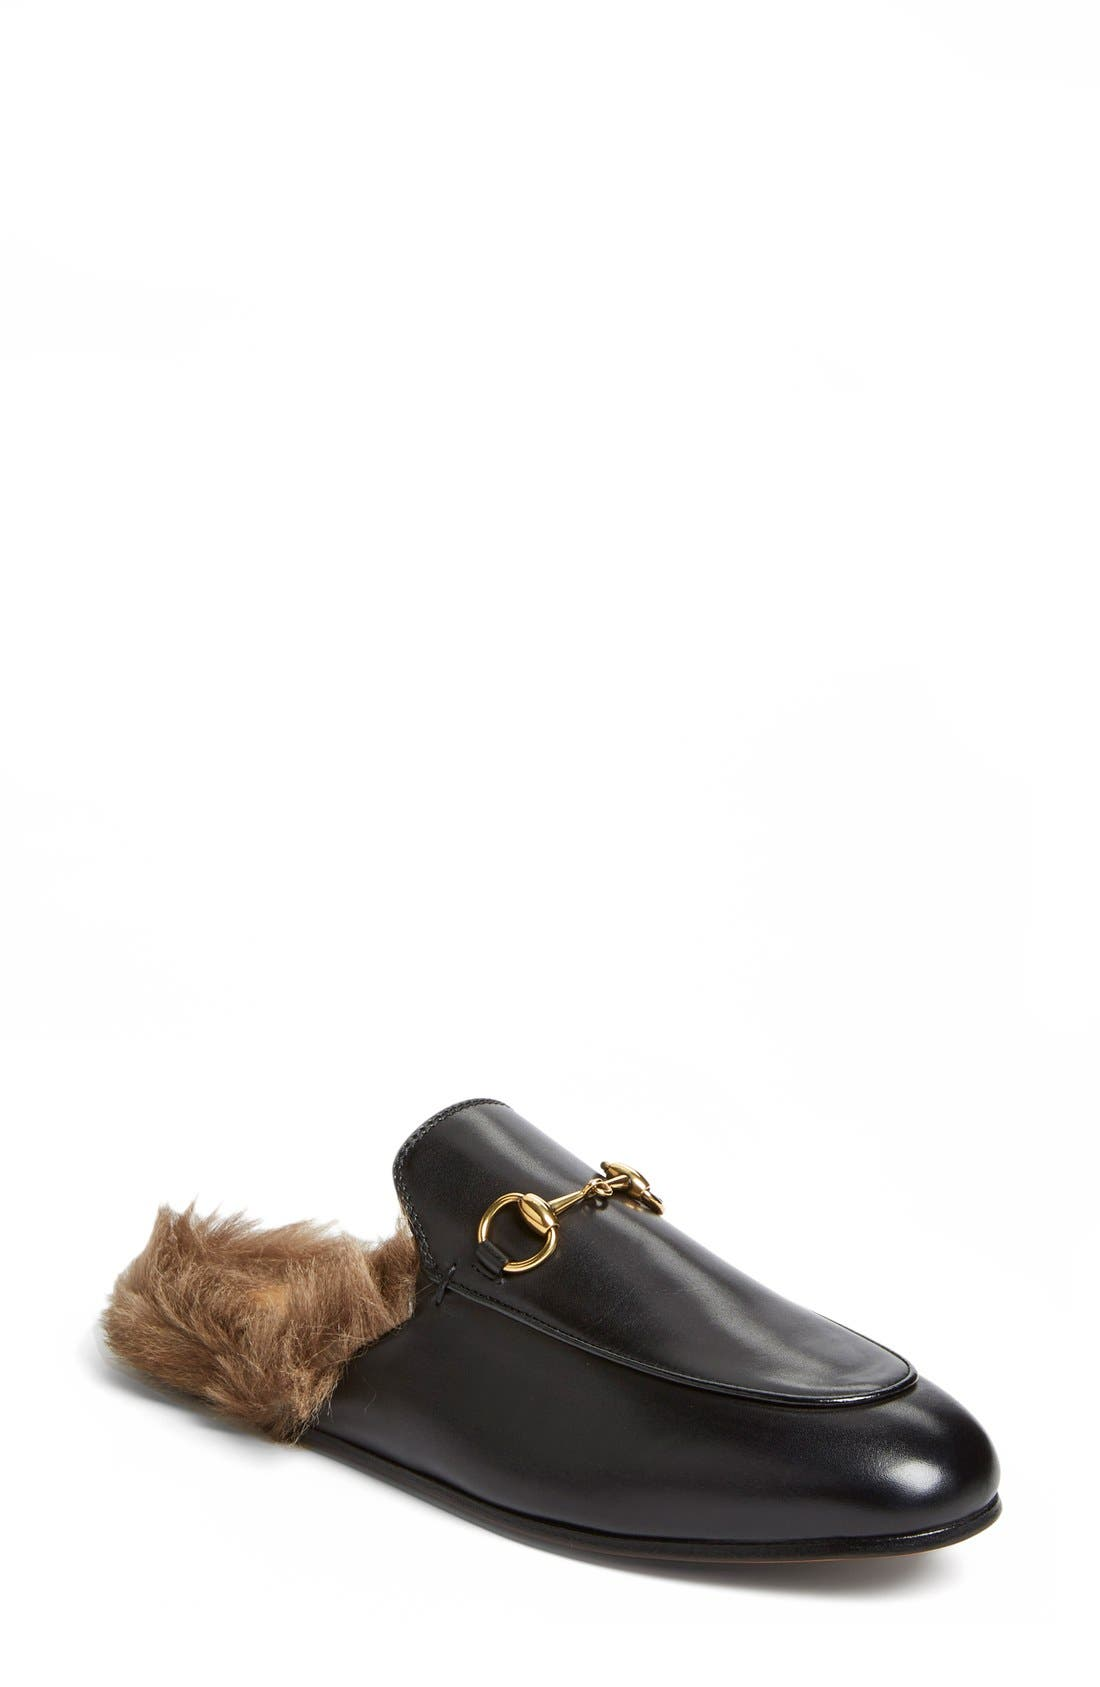 Alternate Image 1 Selected - Gucci Princetown Genuine Shearling Loafer Mule (Women)